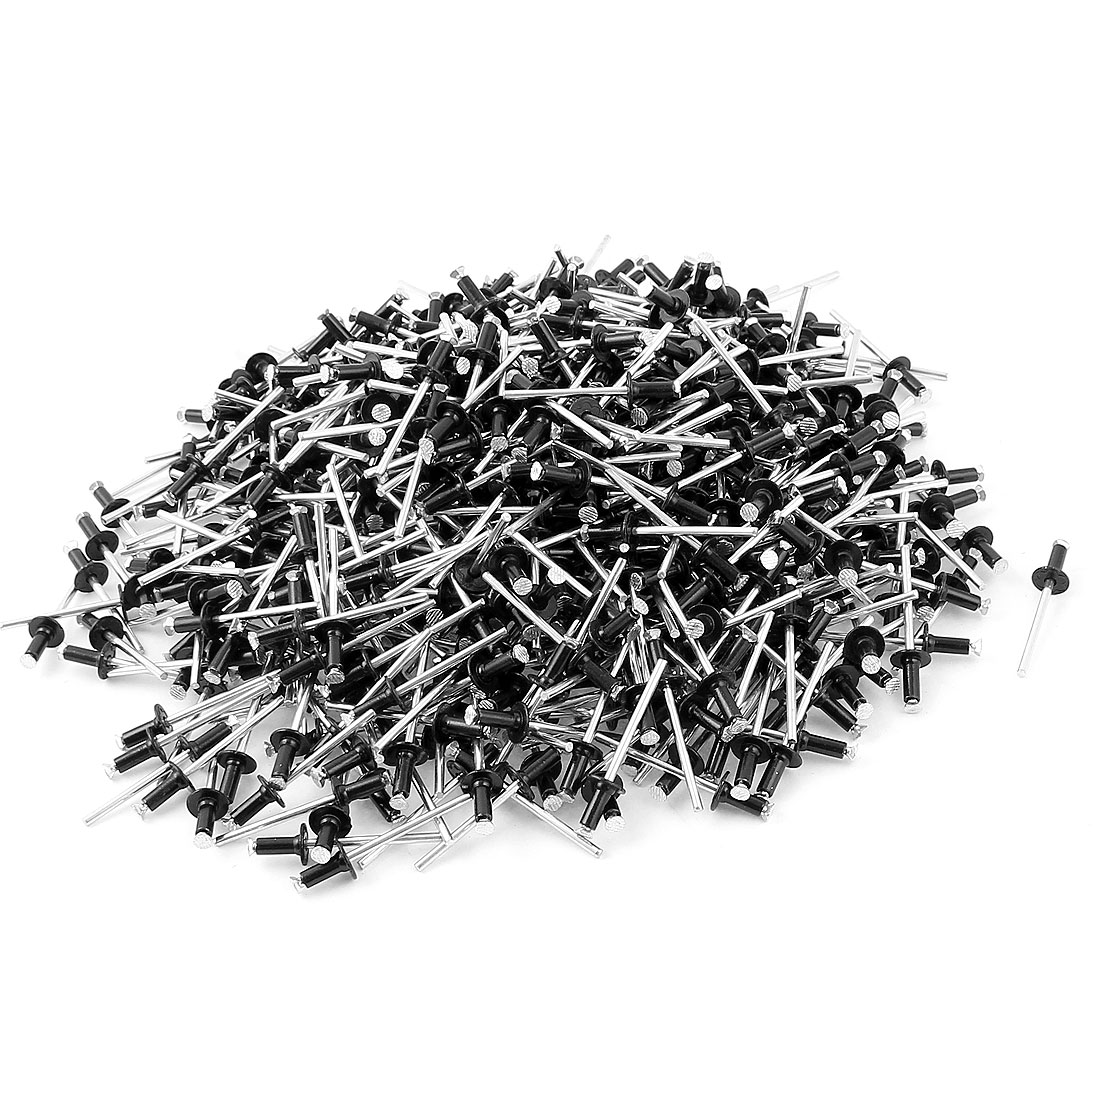 "1000 Pcs 5/32"" x 25/64"" Aluminum Alloy Open End Blind Pop Rivets Dome Head Black"